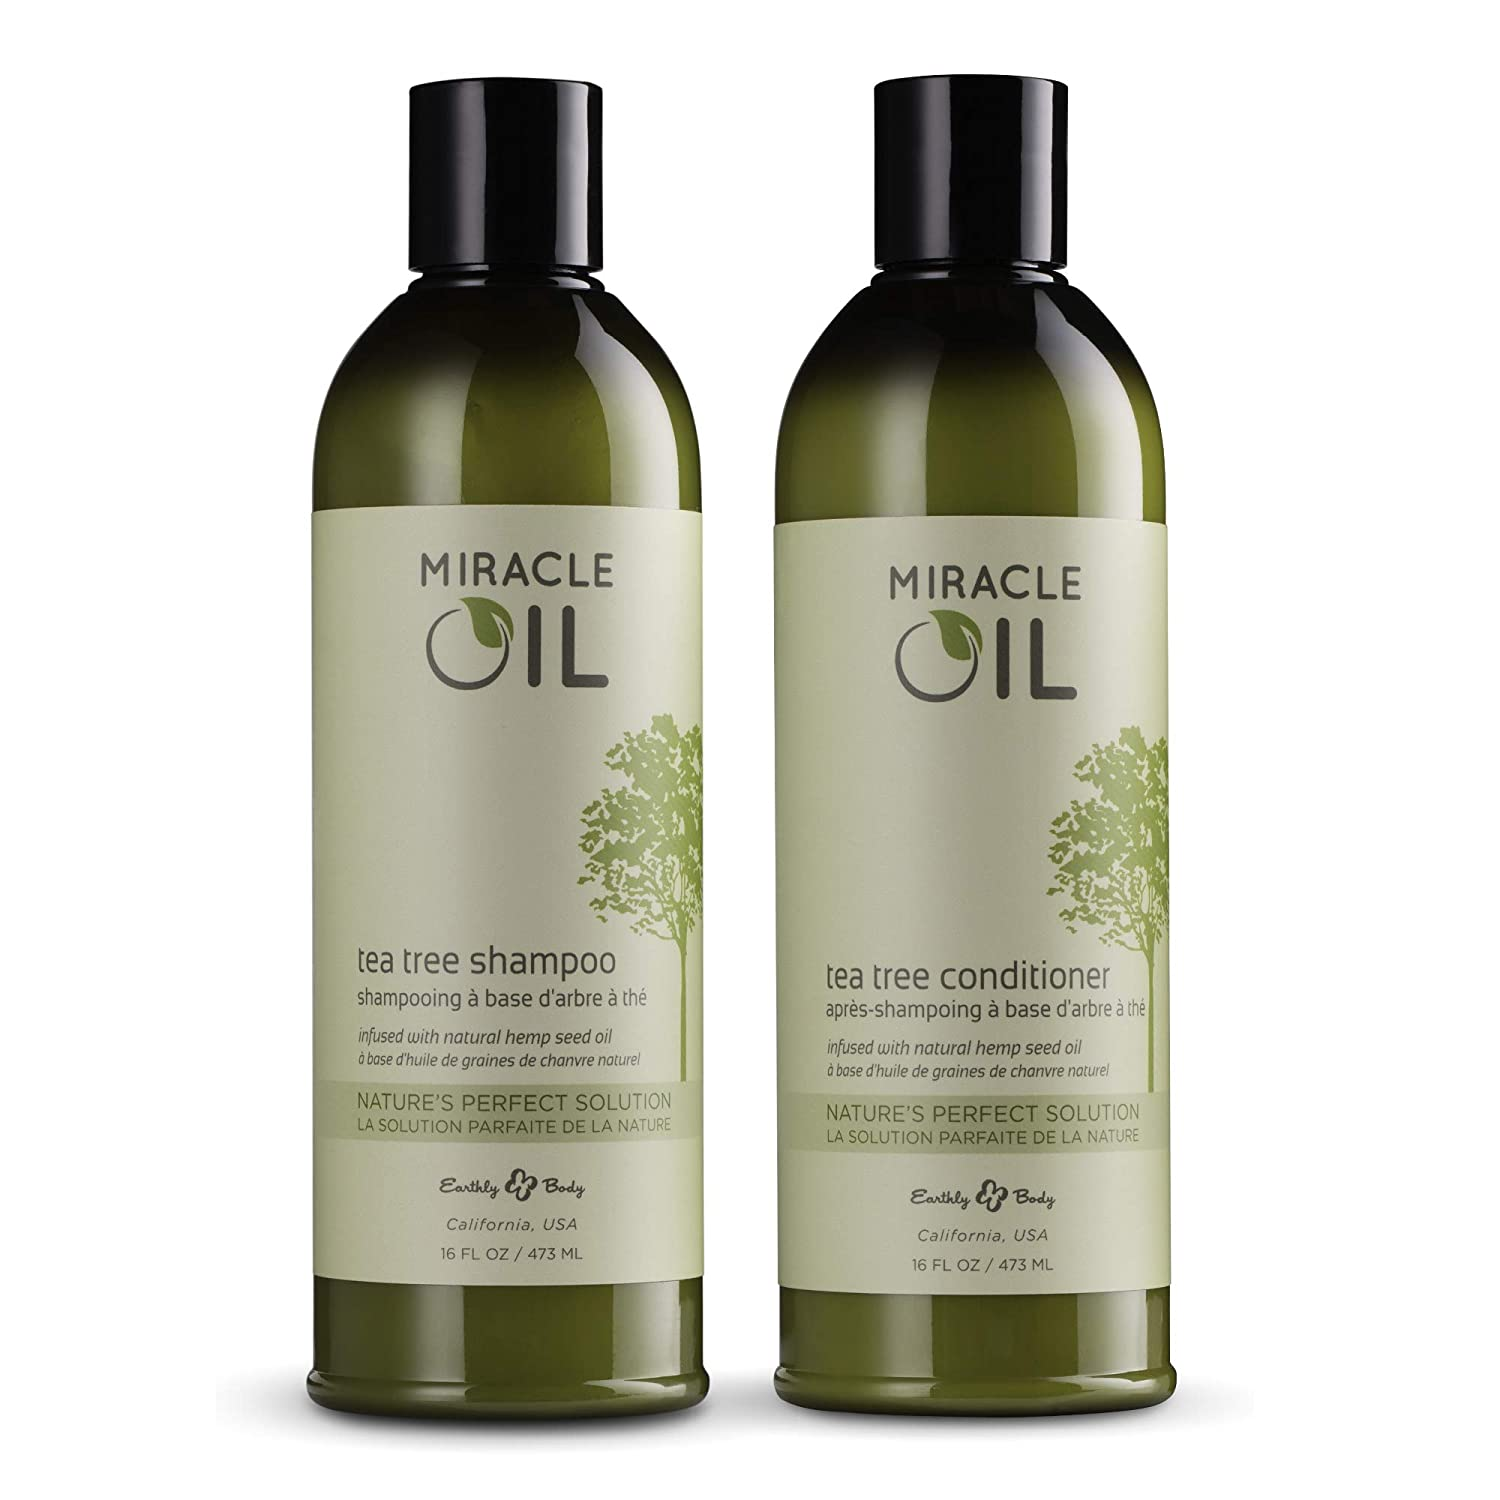 Earthly Body Miracle Oil Tea Tree Shampoo & Conditioner Set, 16 oz. - Tea Tree, Hemp Seed, Argan & Eucalyptus Oils - 100% Vegan, Cruelty-Free